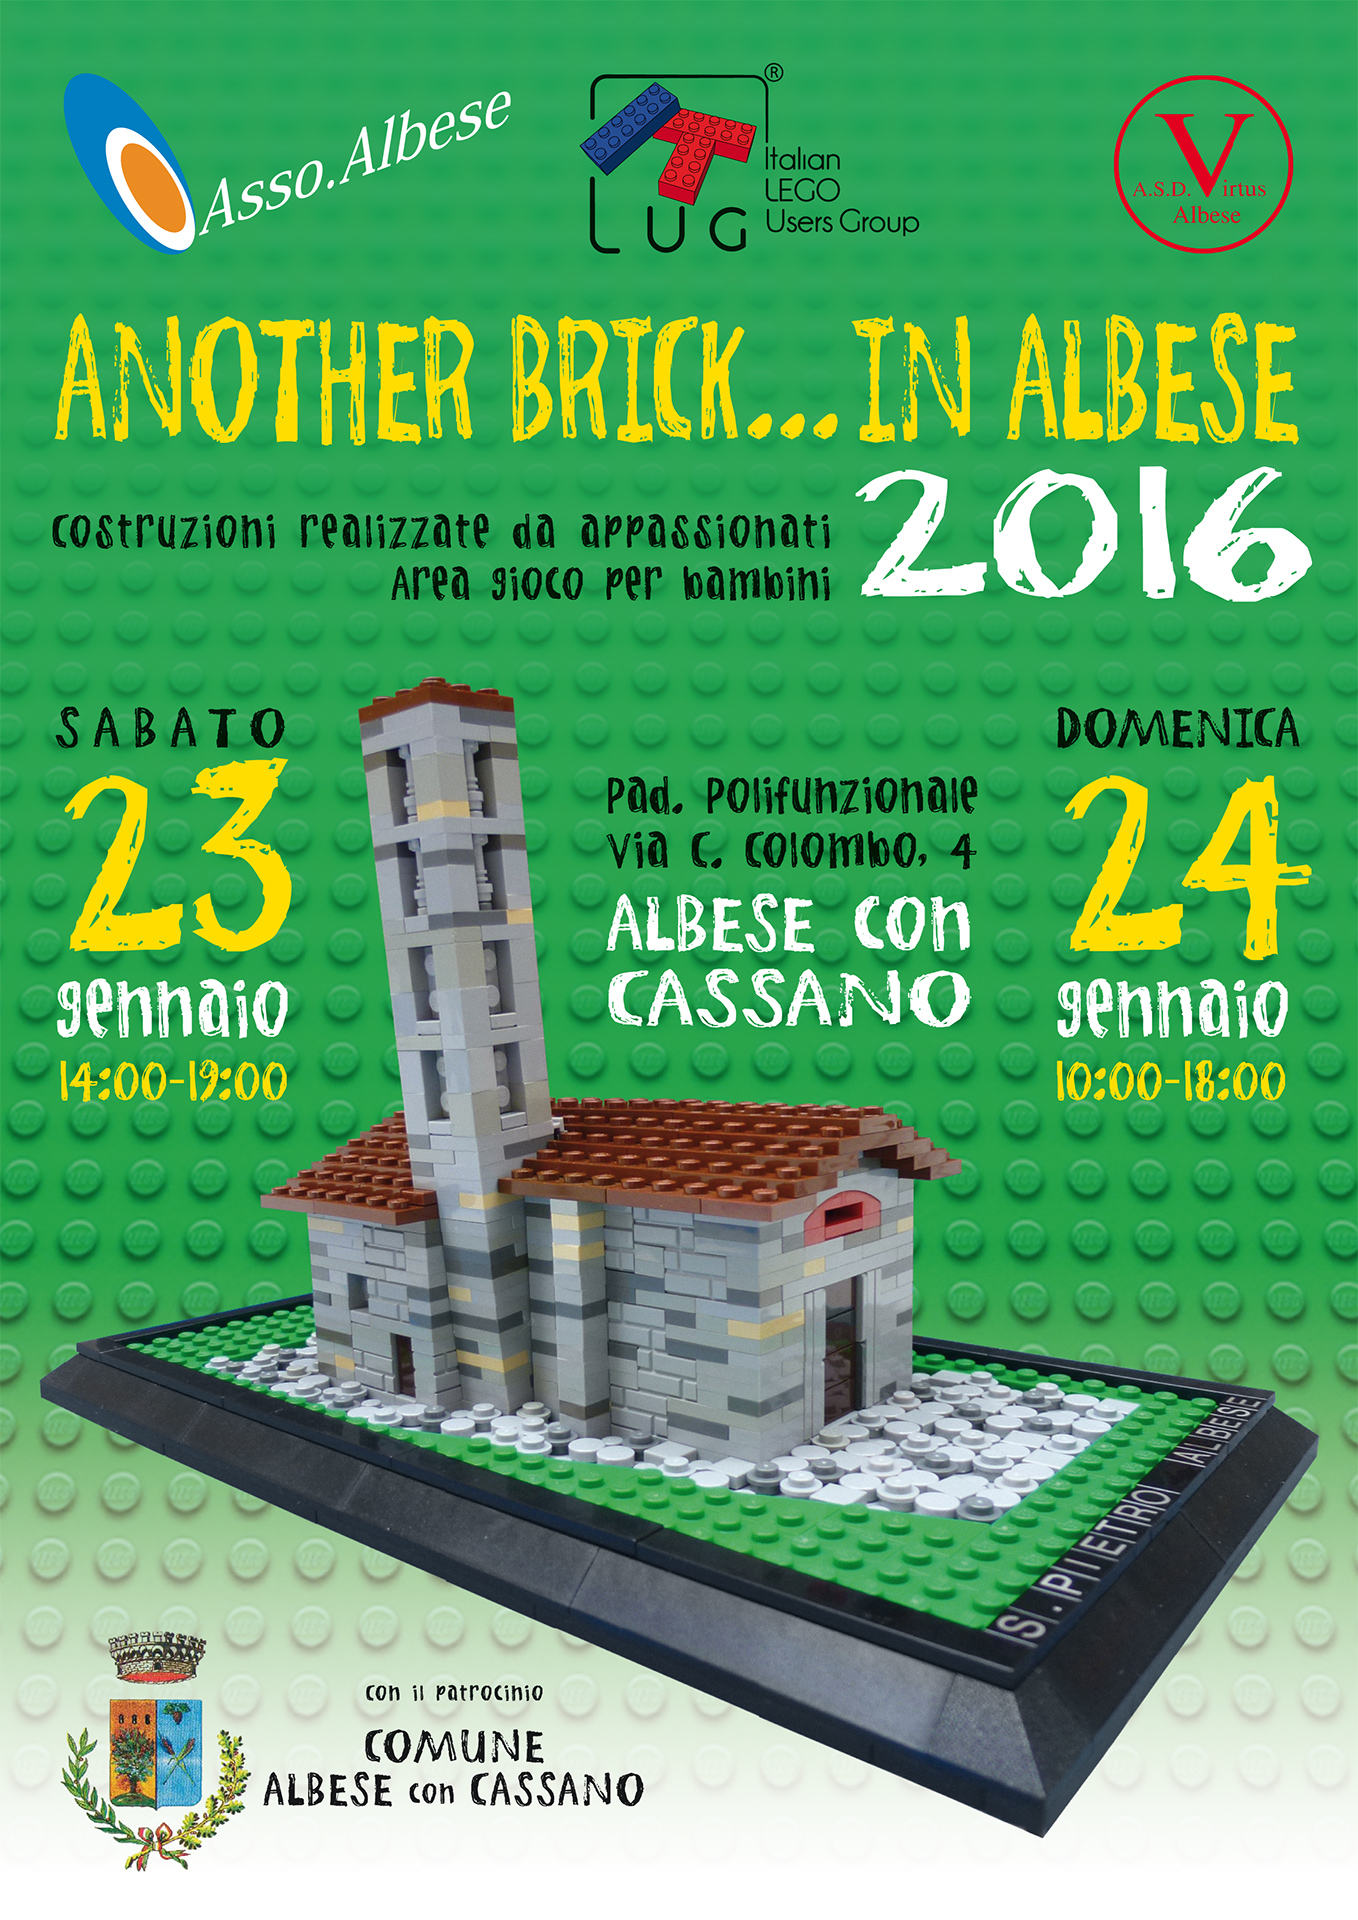 Another Brick in... Albese - ItLUG Albese 2016